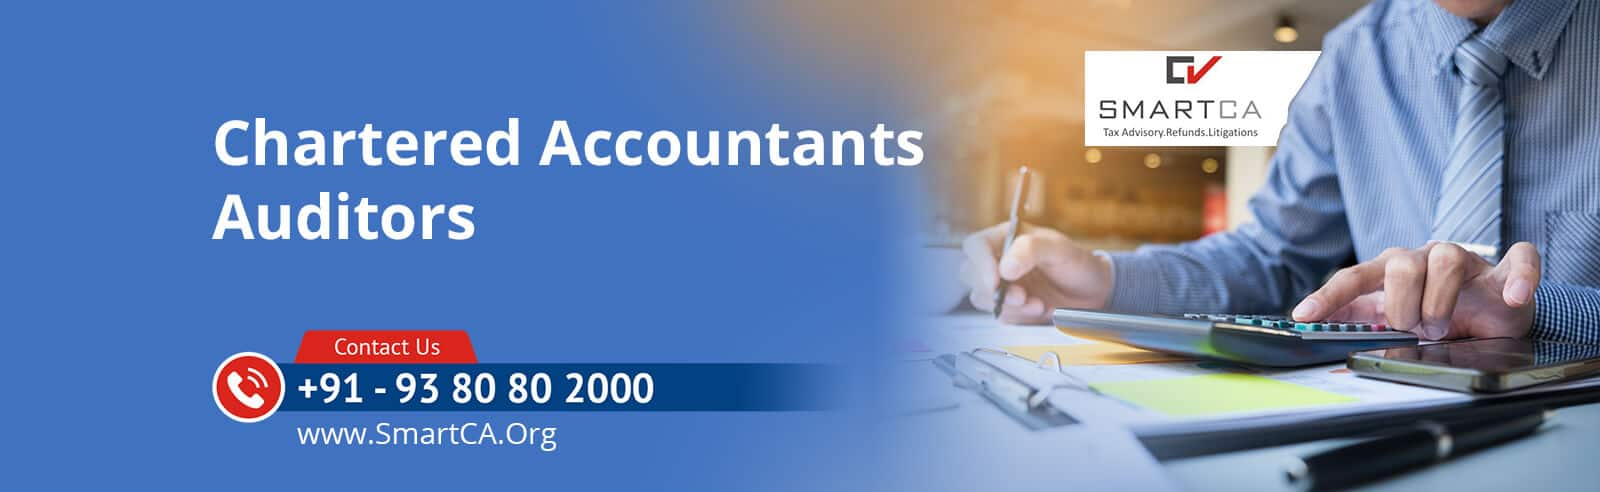 Auditors in Chennai Mogappair